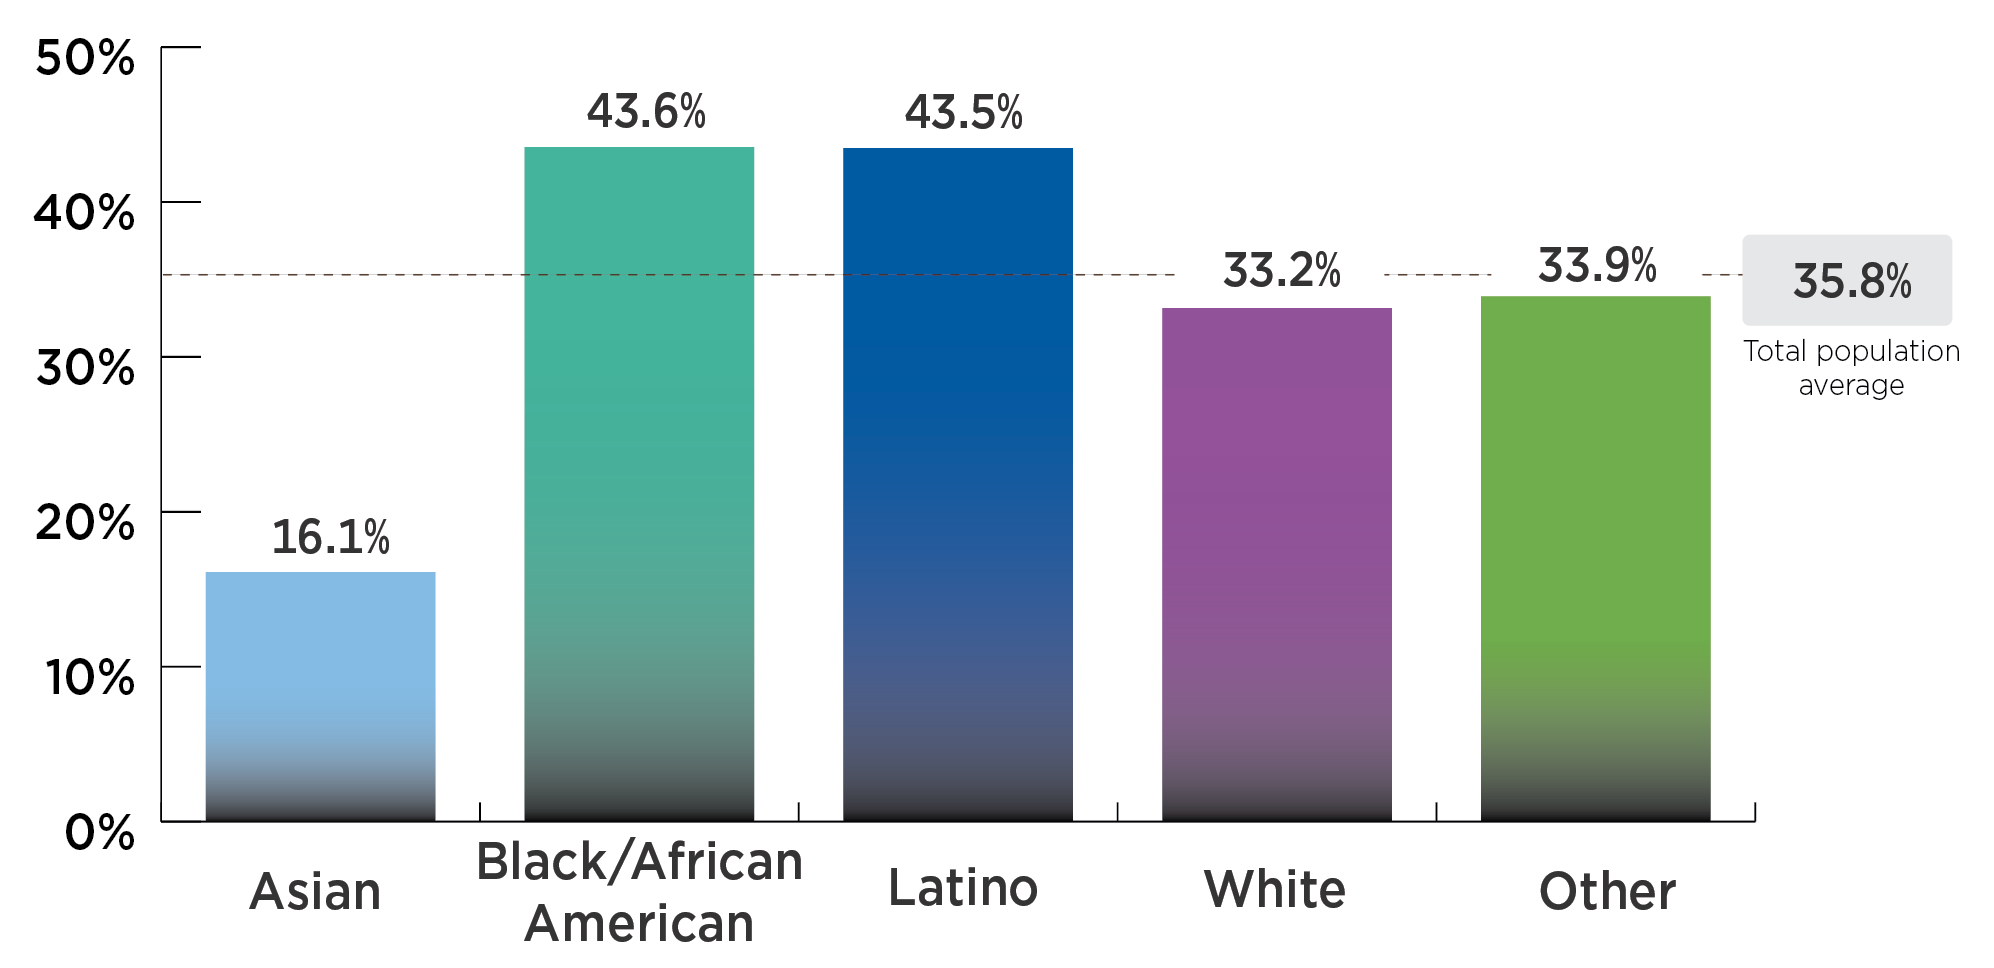 Nearly half of Latino (43.5%) and Black/African American (43.6%) Californians have obesity, while smaller percentages of Asian (16.1%), White (33.2%), and Californians of another race (33.9%) have obesity.